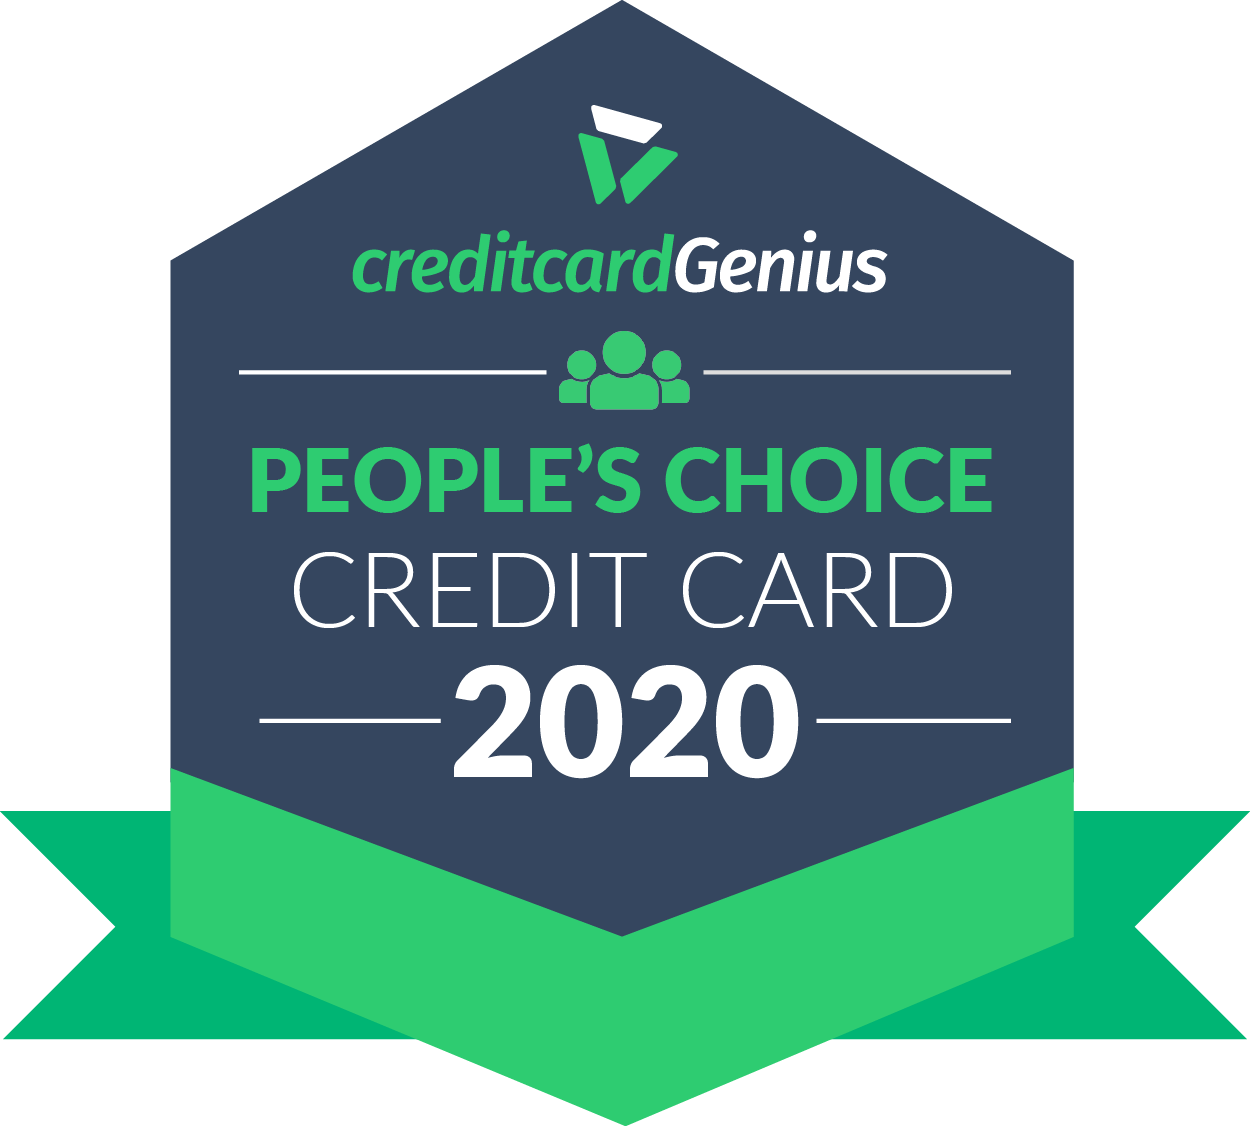 People's choice credit card in Canada for 2020 award seal